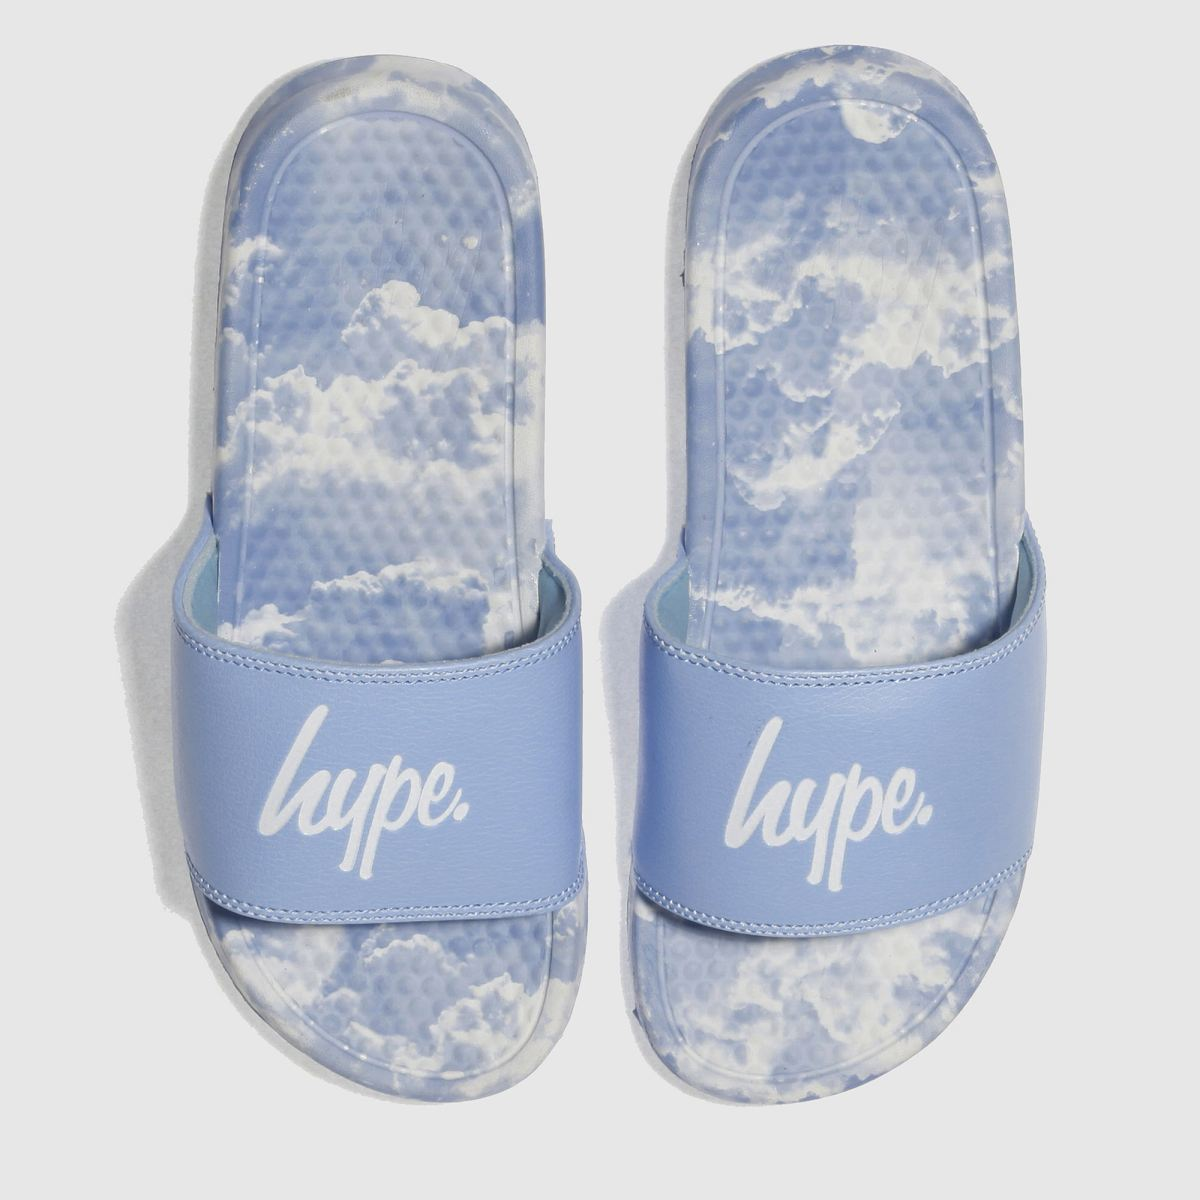 Hype Hype Pale Blue Clouds Slider Sandals